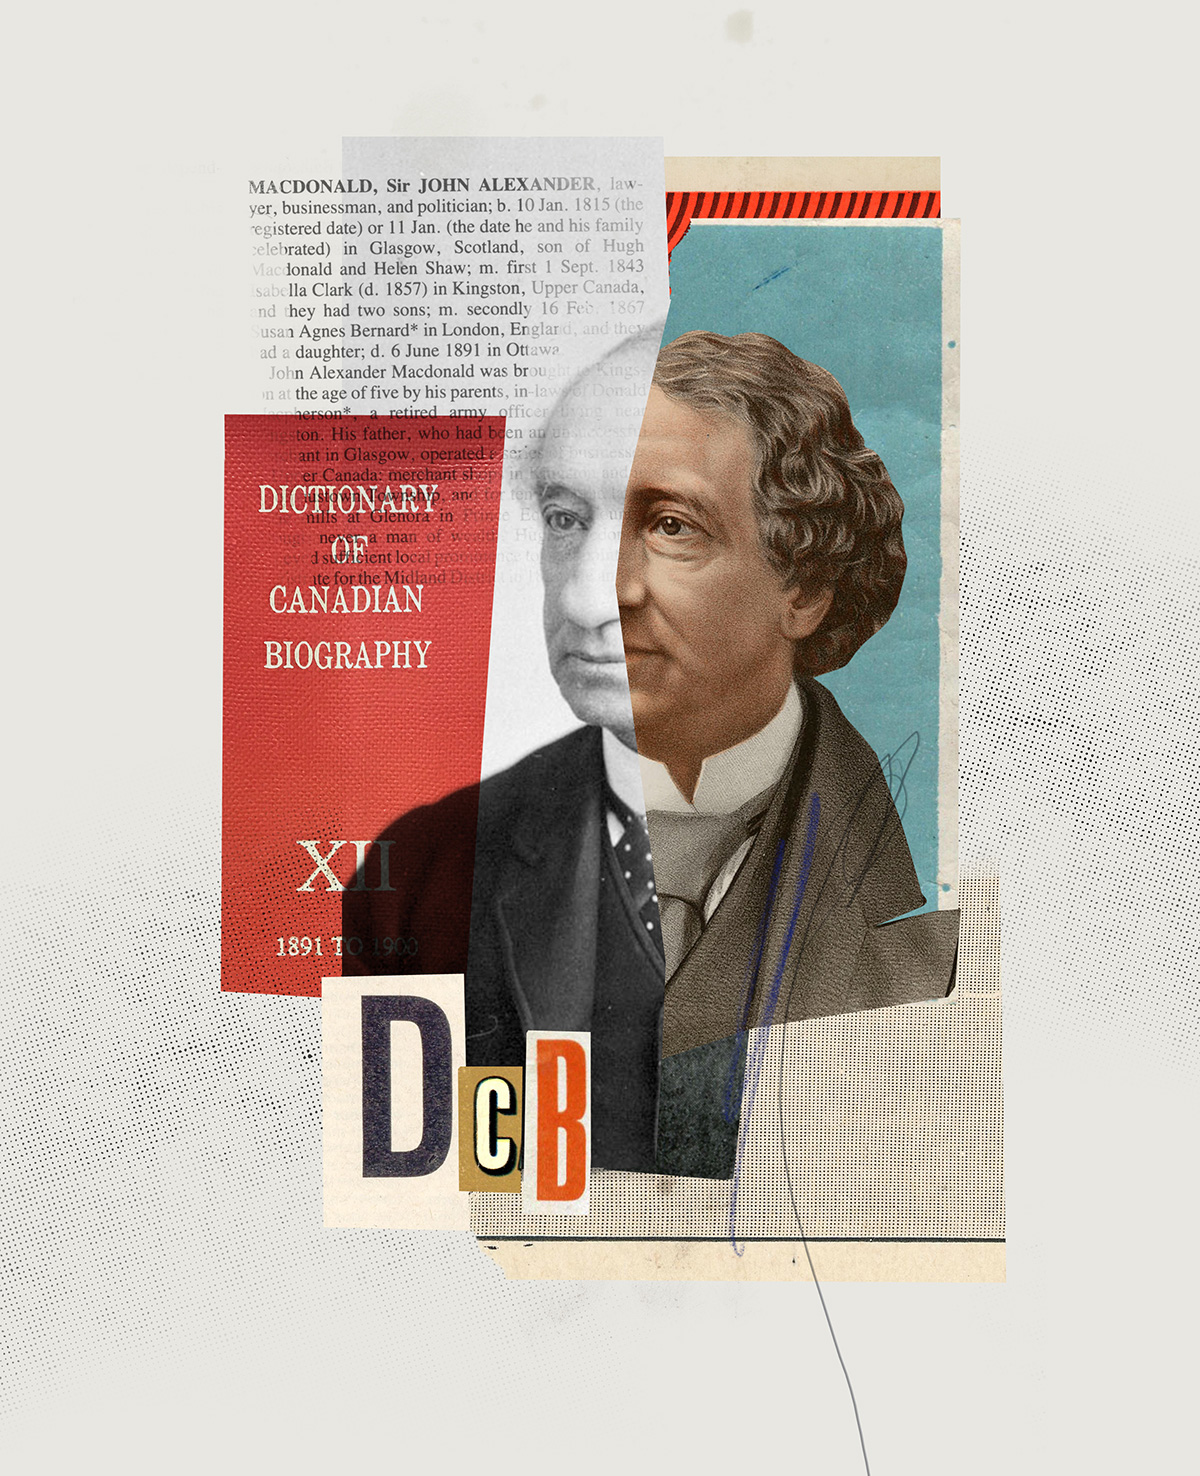 A collage containing an illustration of Sir John A. Macdonald with